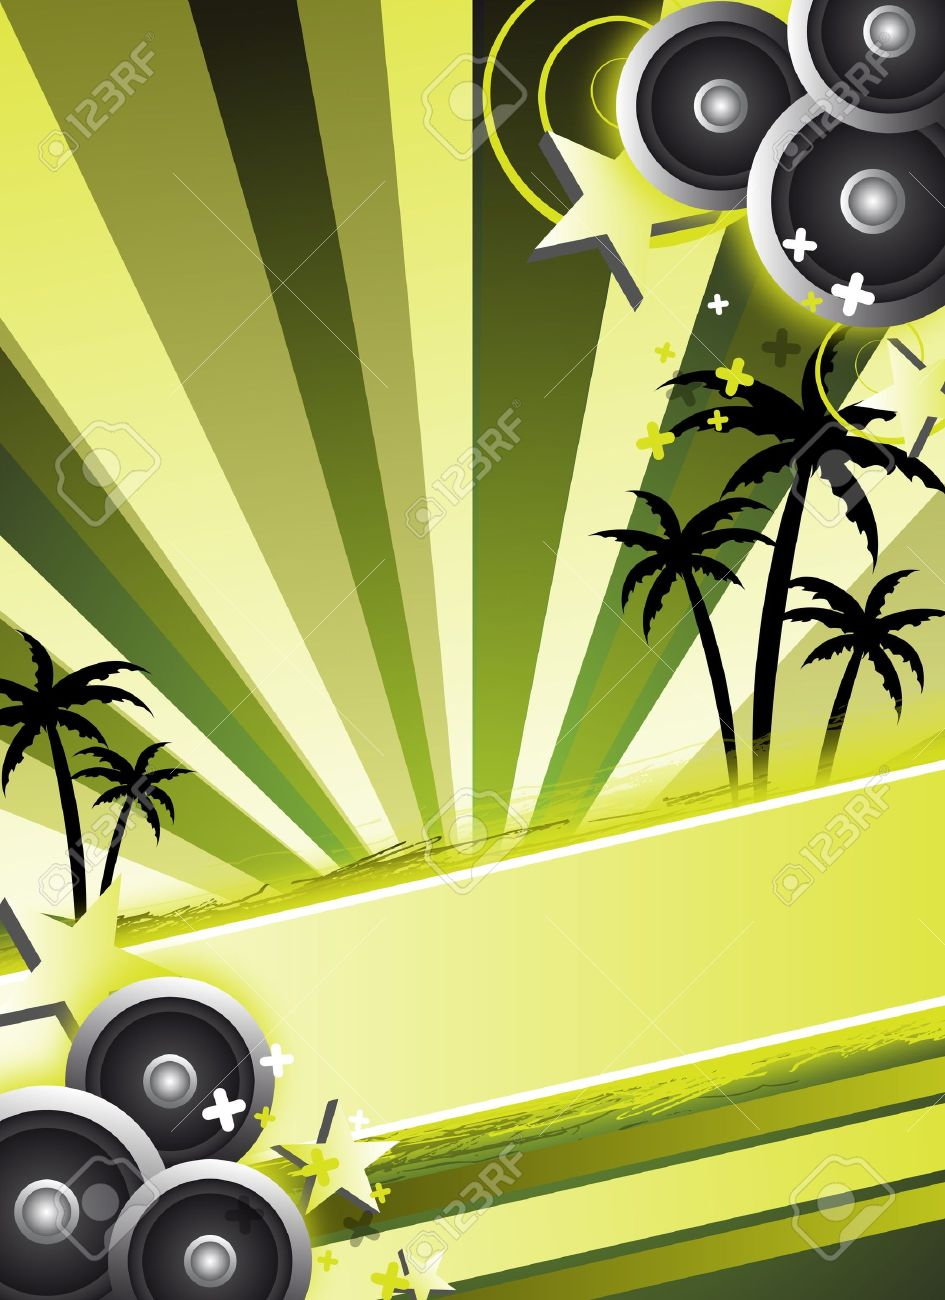 party flyers backgrounds